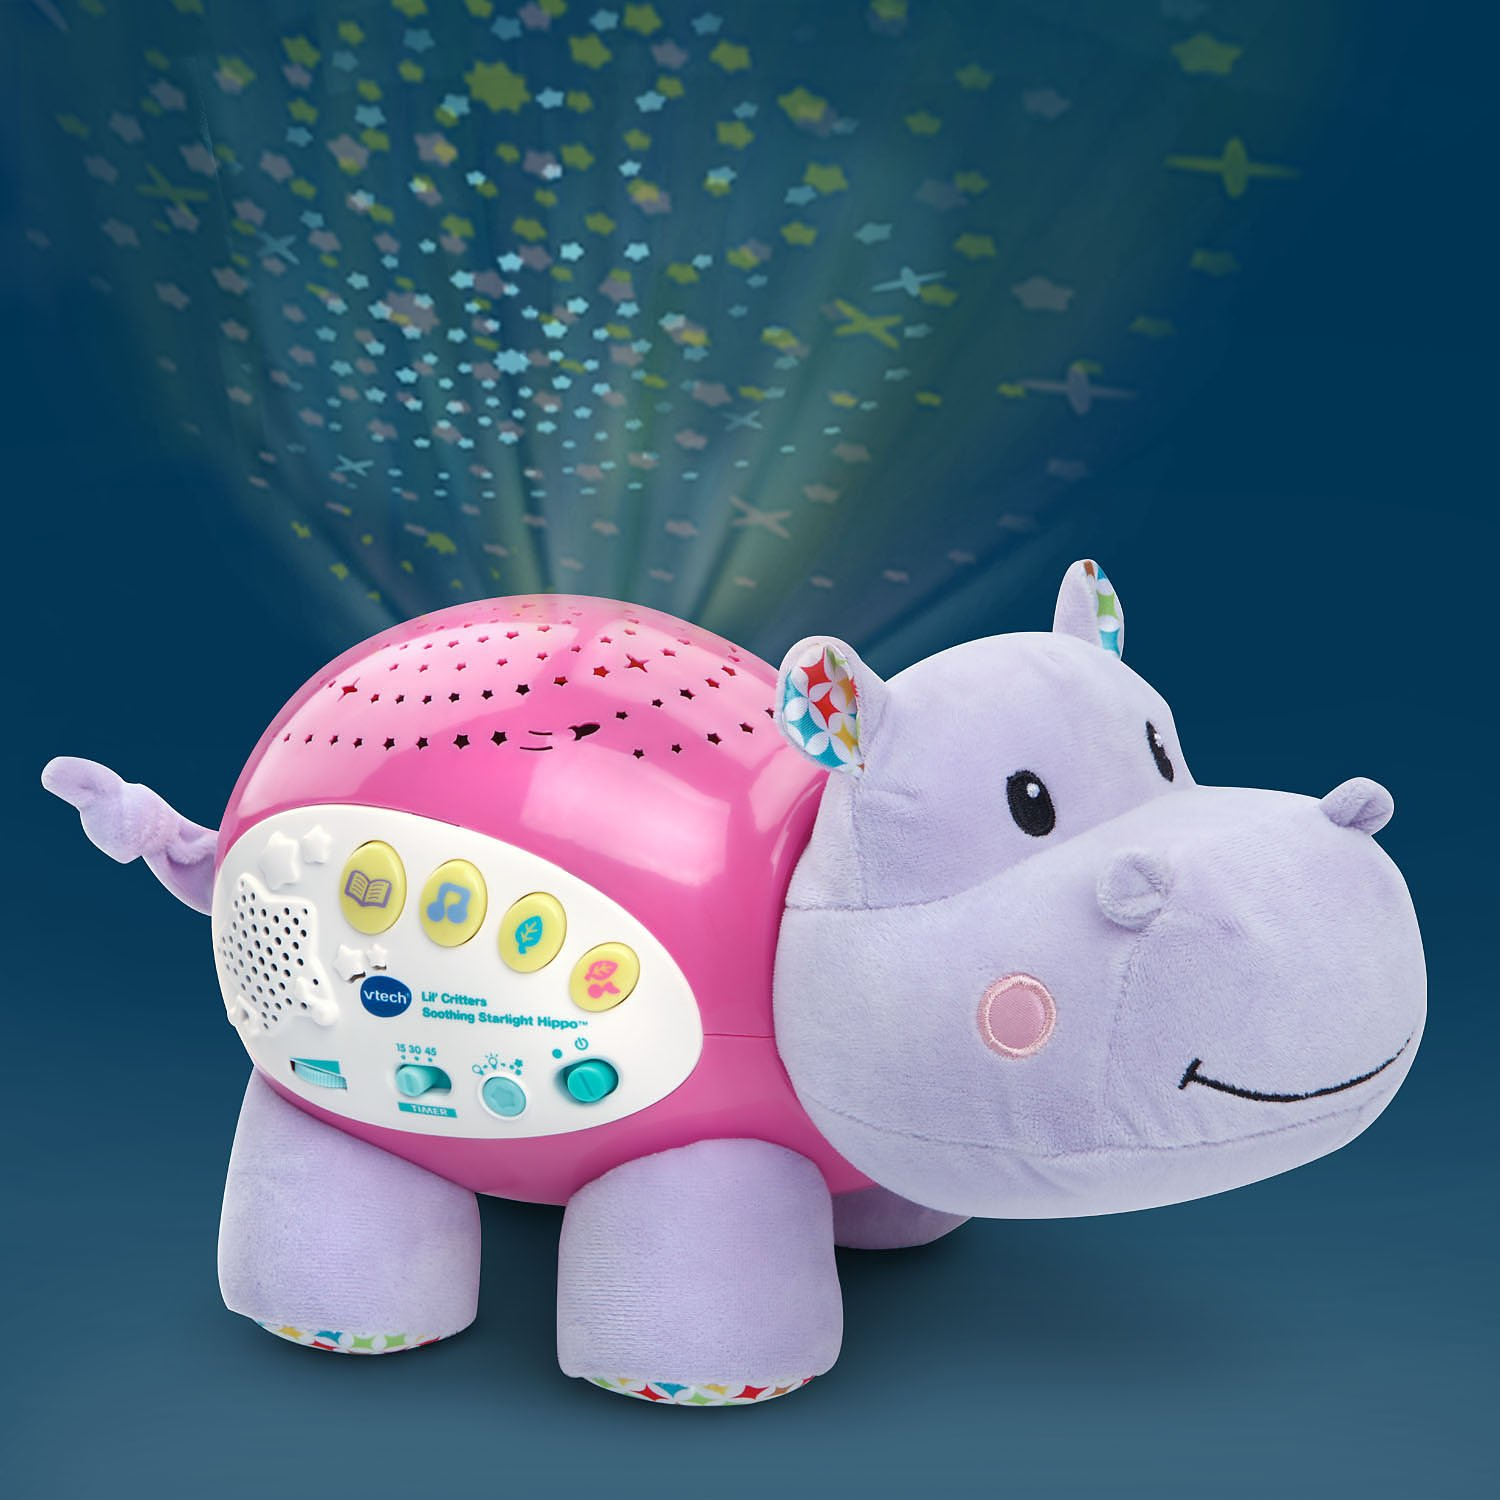 VTech Baby Lil' Critters Soothing Starlight Hippo, Pink (Amazon Exclusive) by VTech (Image #3)